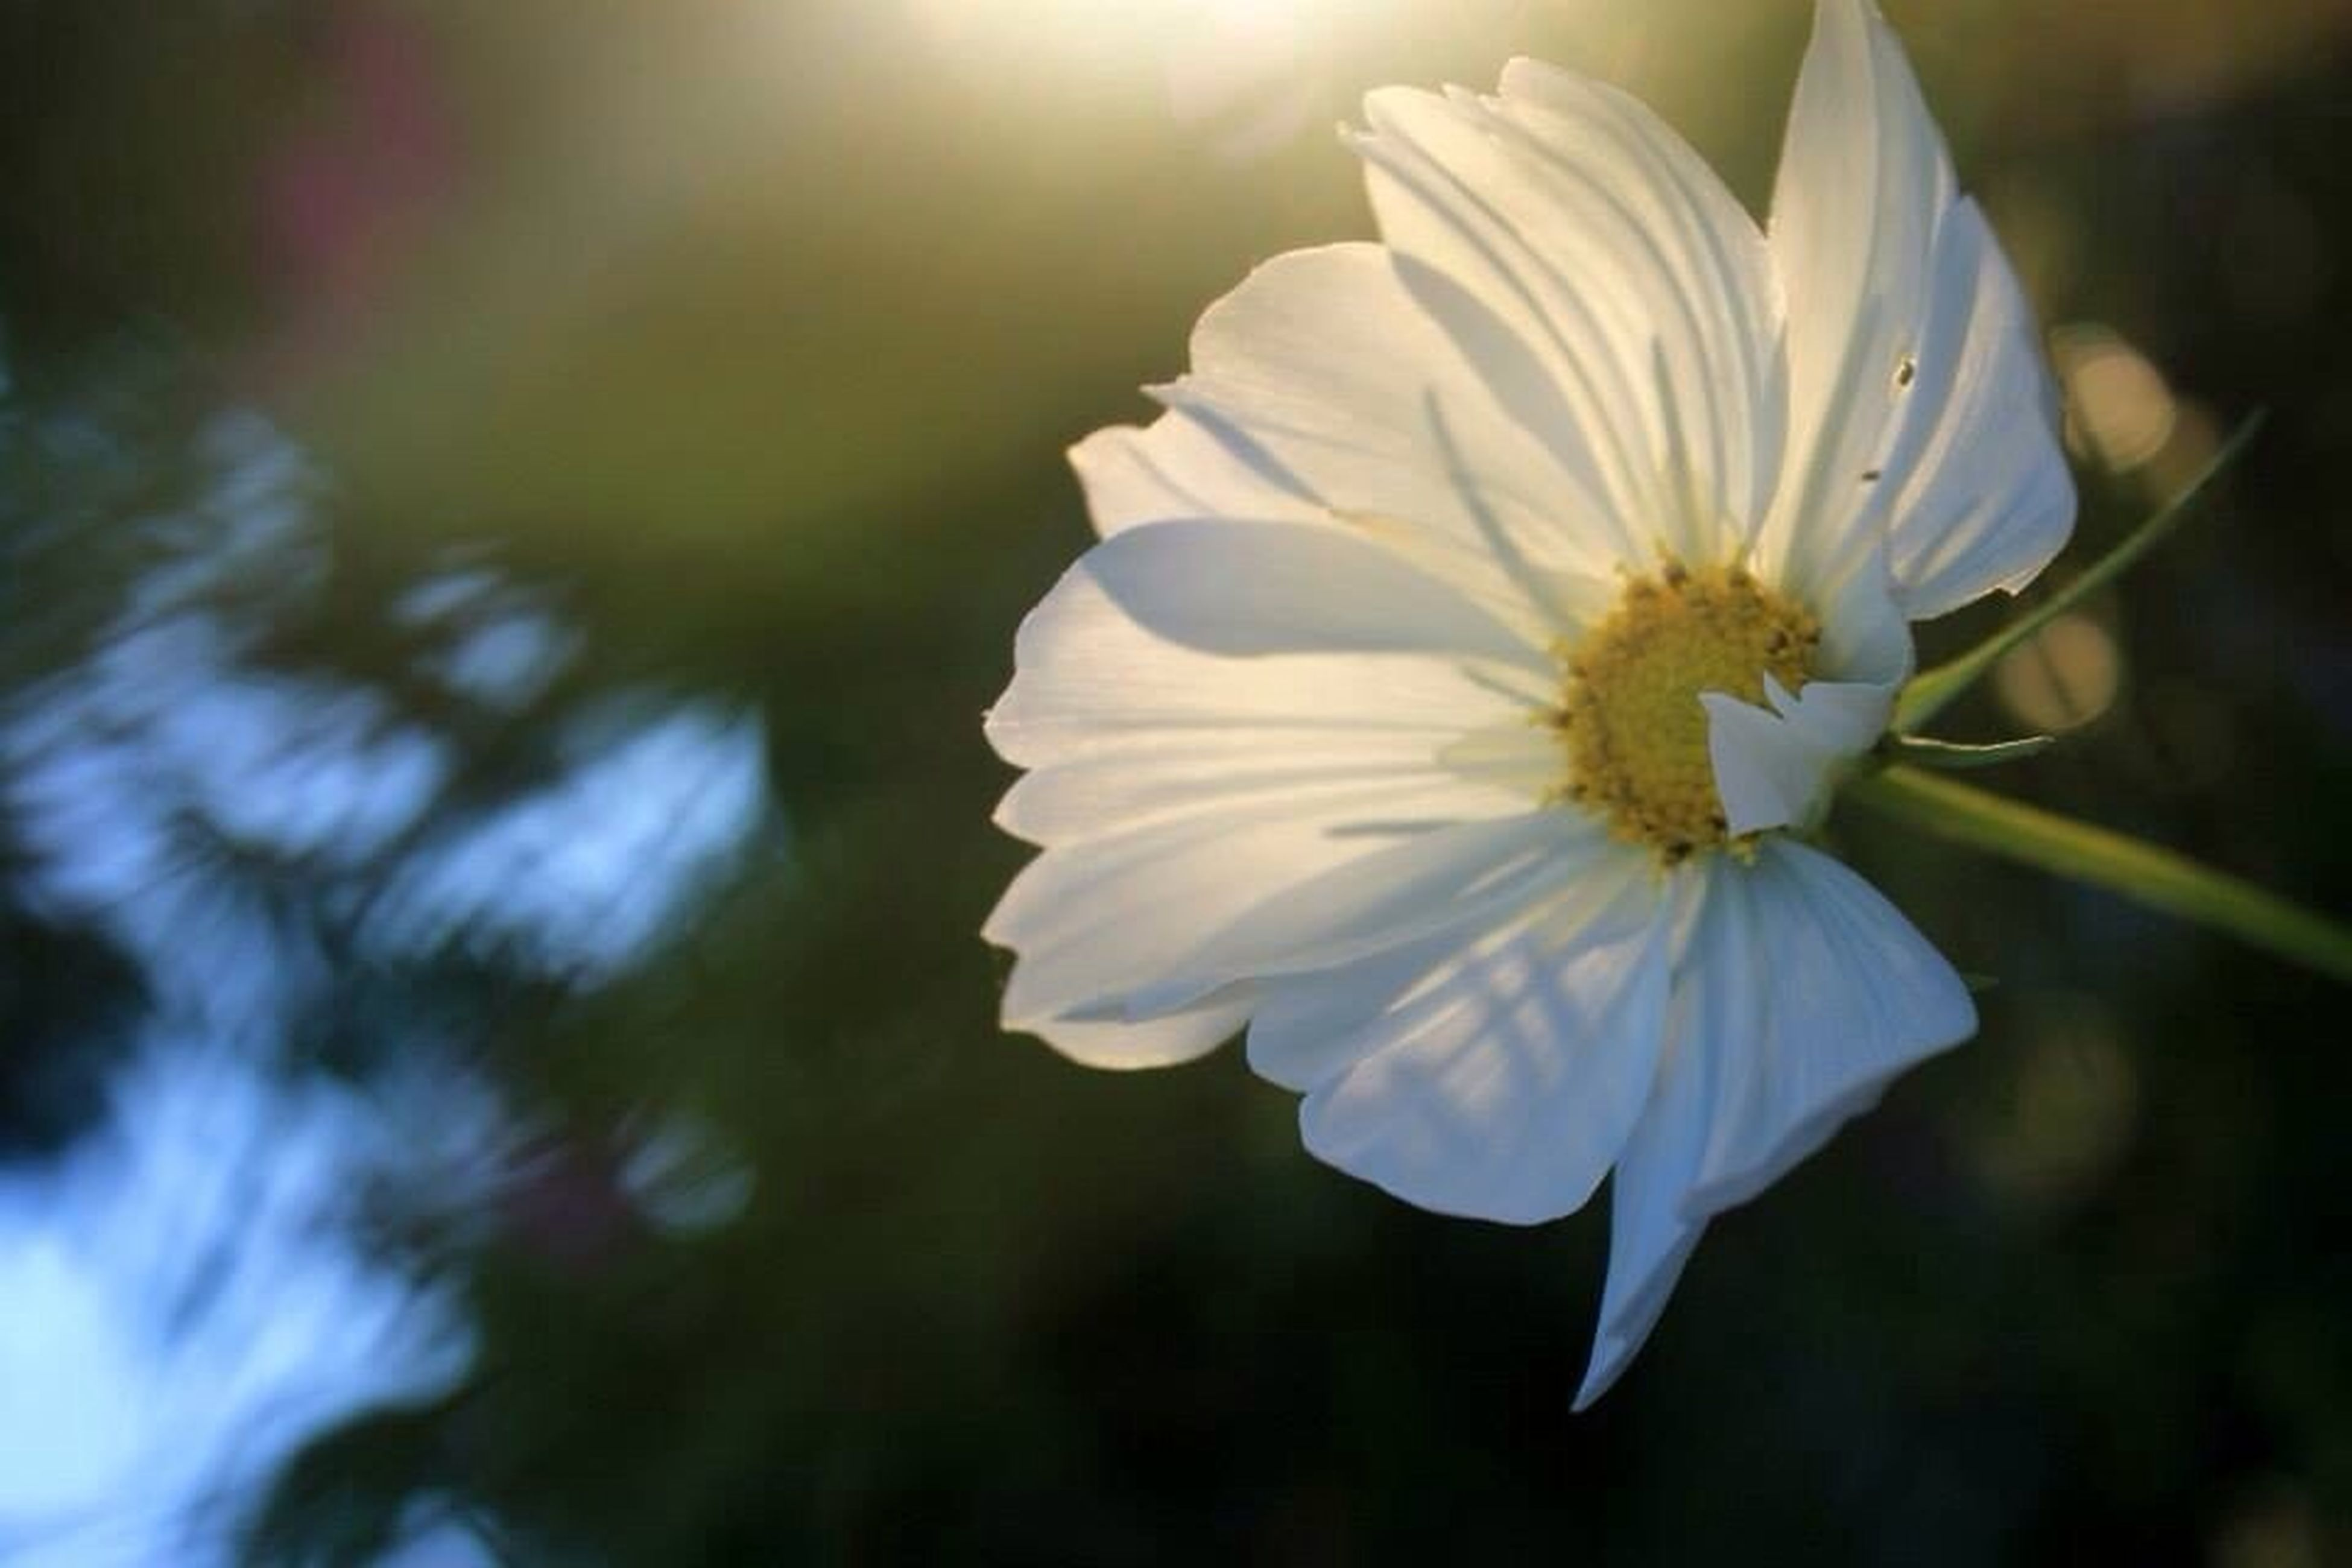 flower, petal, fragility, flower head, freshness, focus on foreground, beauty in nature, growth, close-up, blooming, white color, nature, single flower, pollen, in bloom, selective focus, stamen, plant, outdoors, day